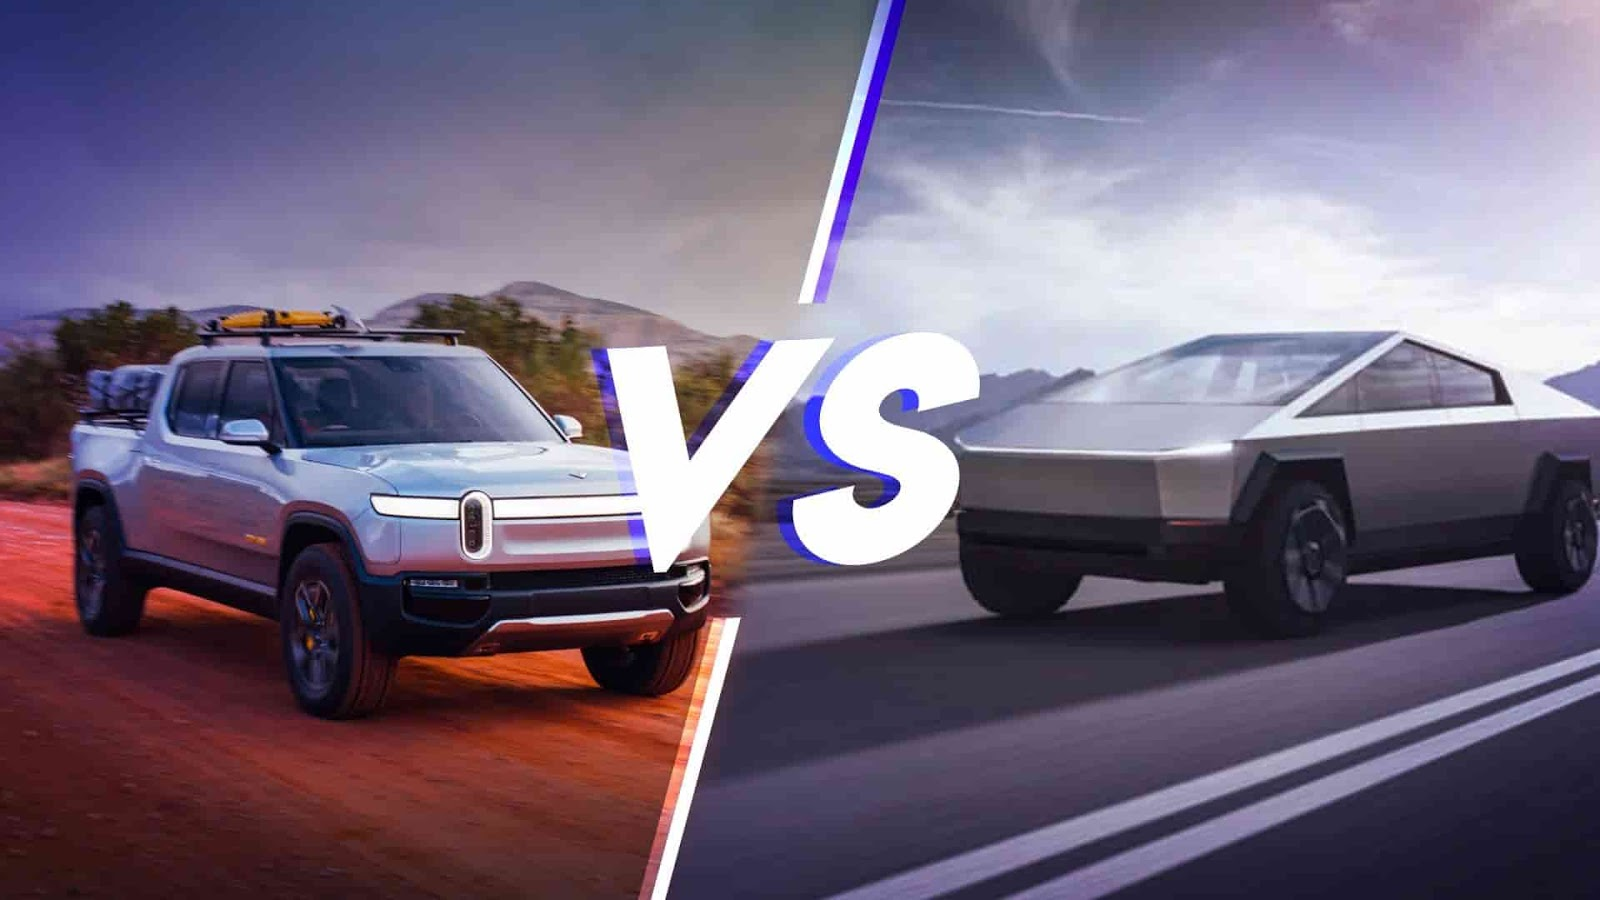 Tesla-Vs-Rivian-innovative-pickup-truck-features